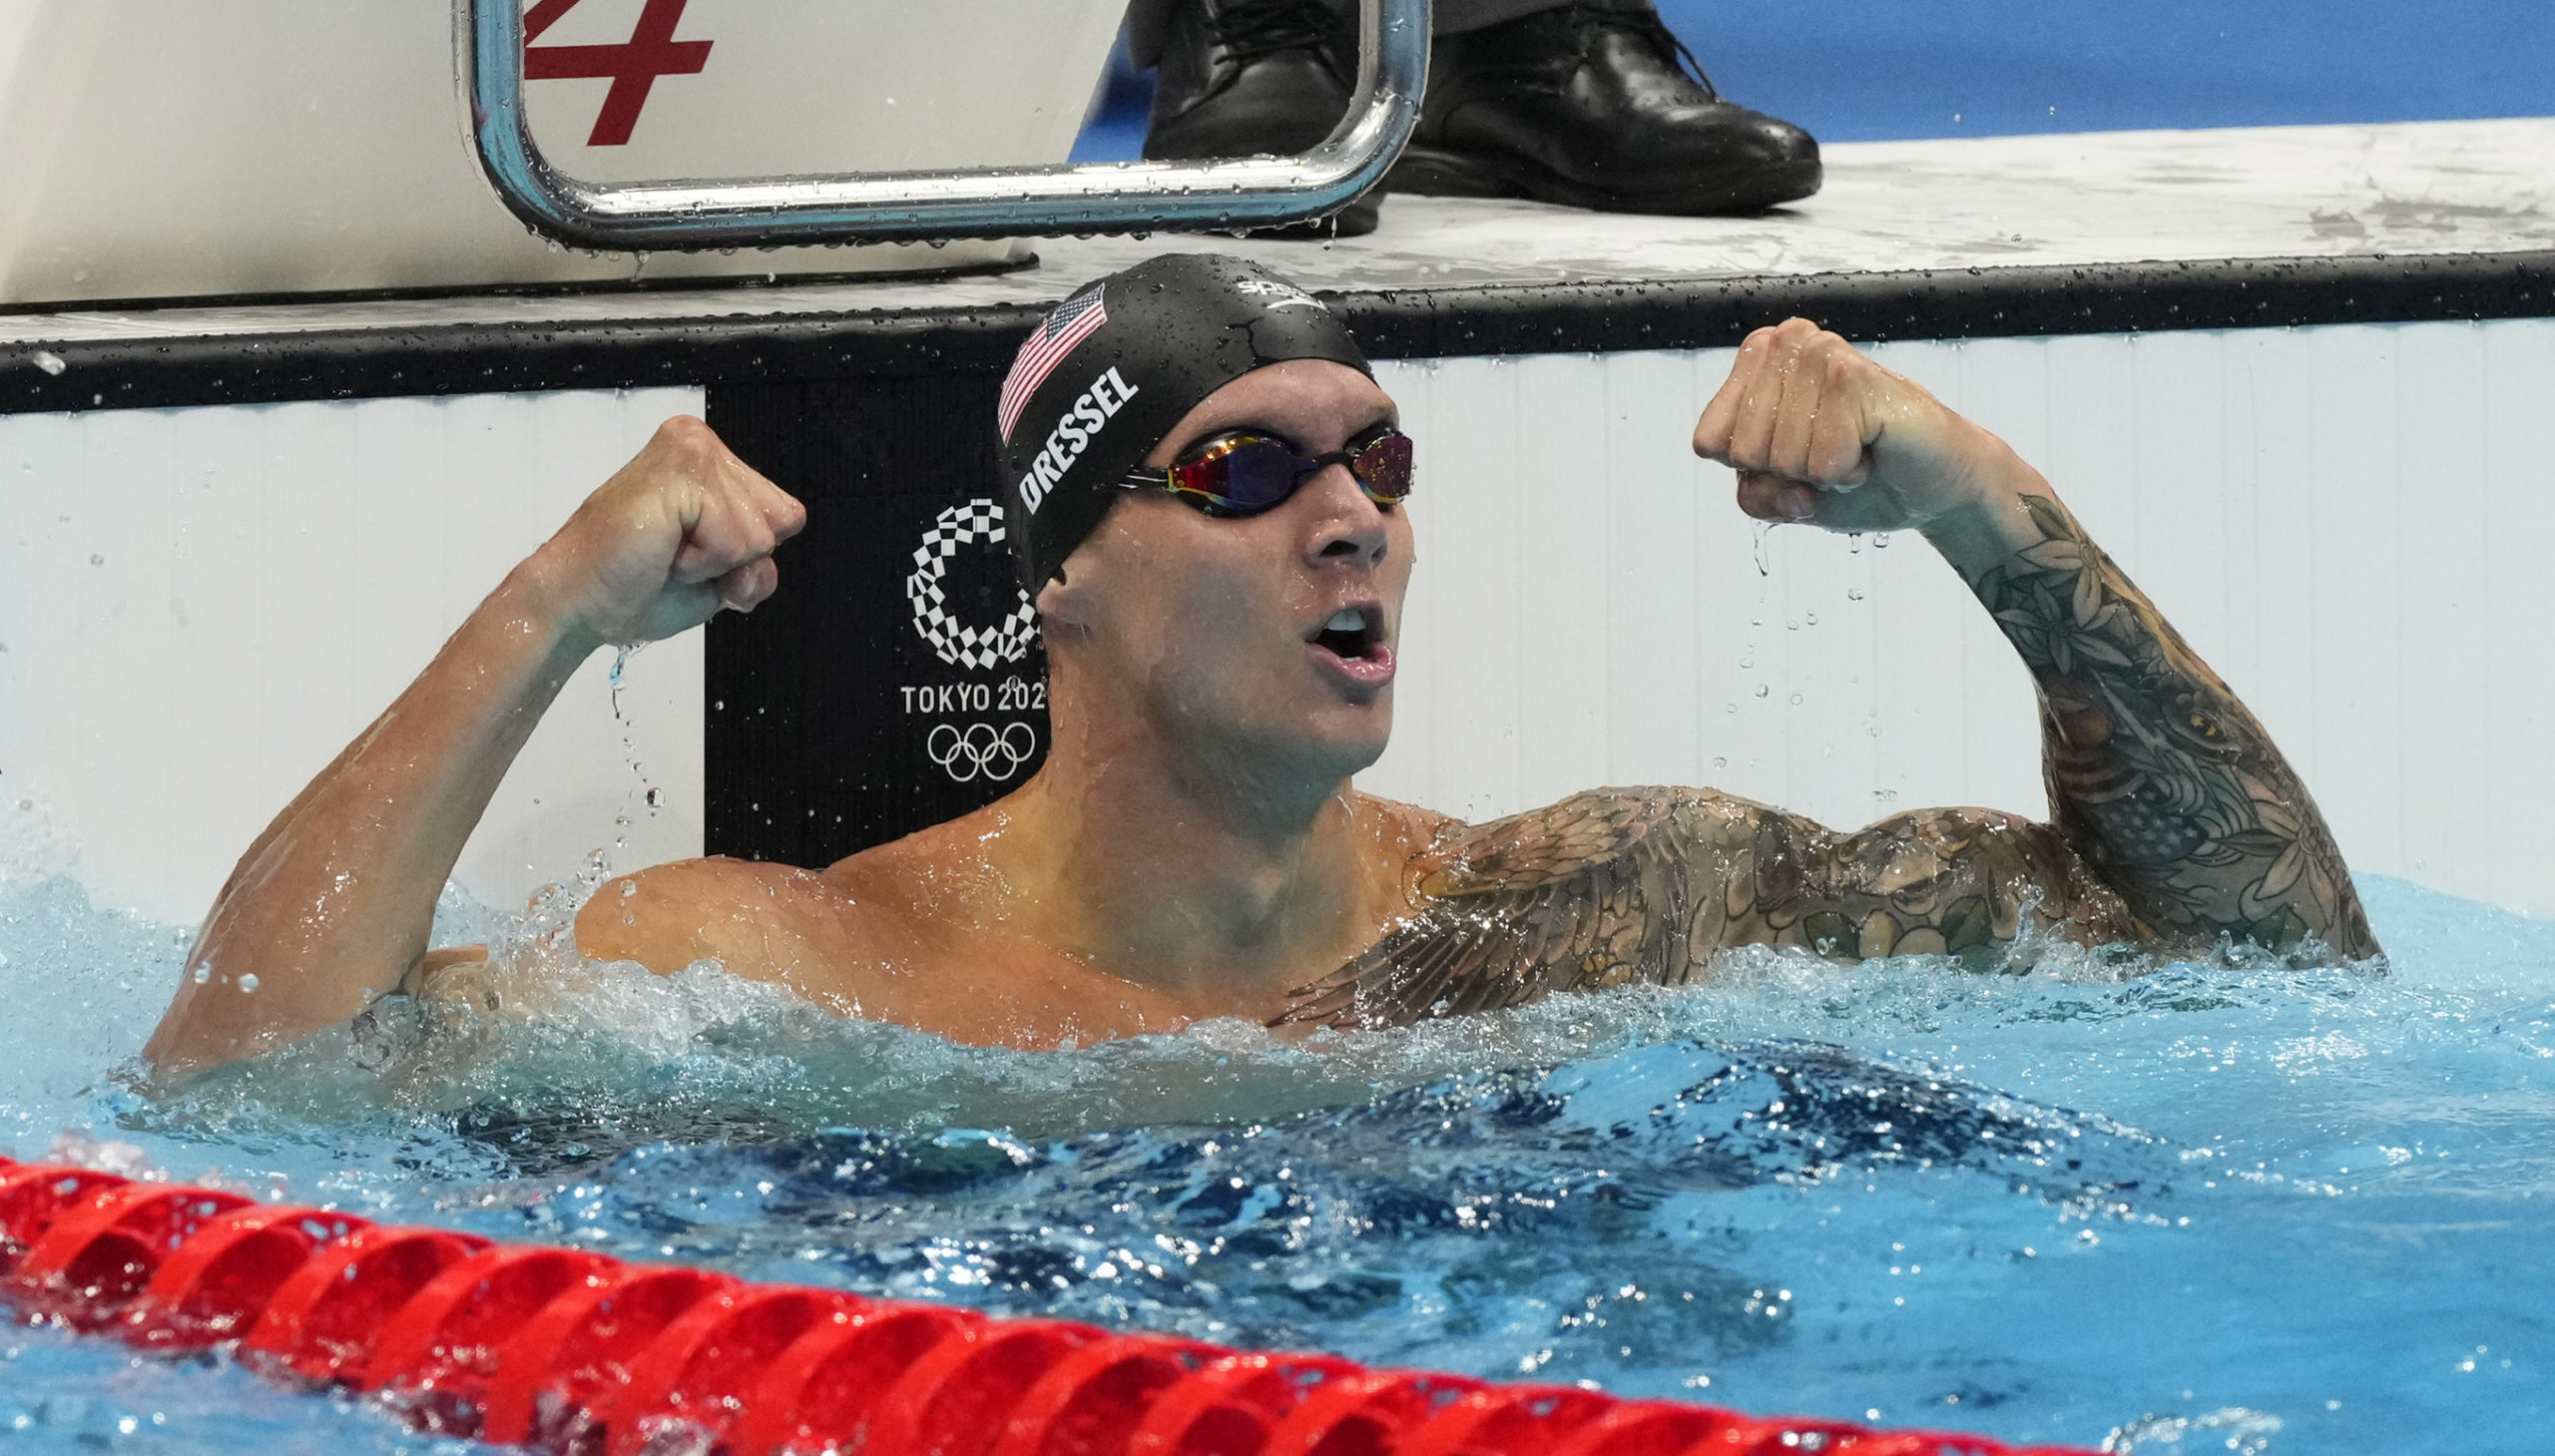 Post Olympics Rankings: Swimming World's Top 25 Male Swimmers